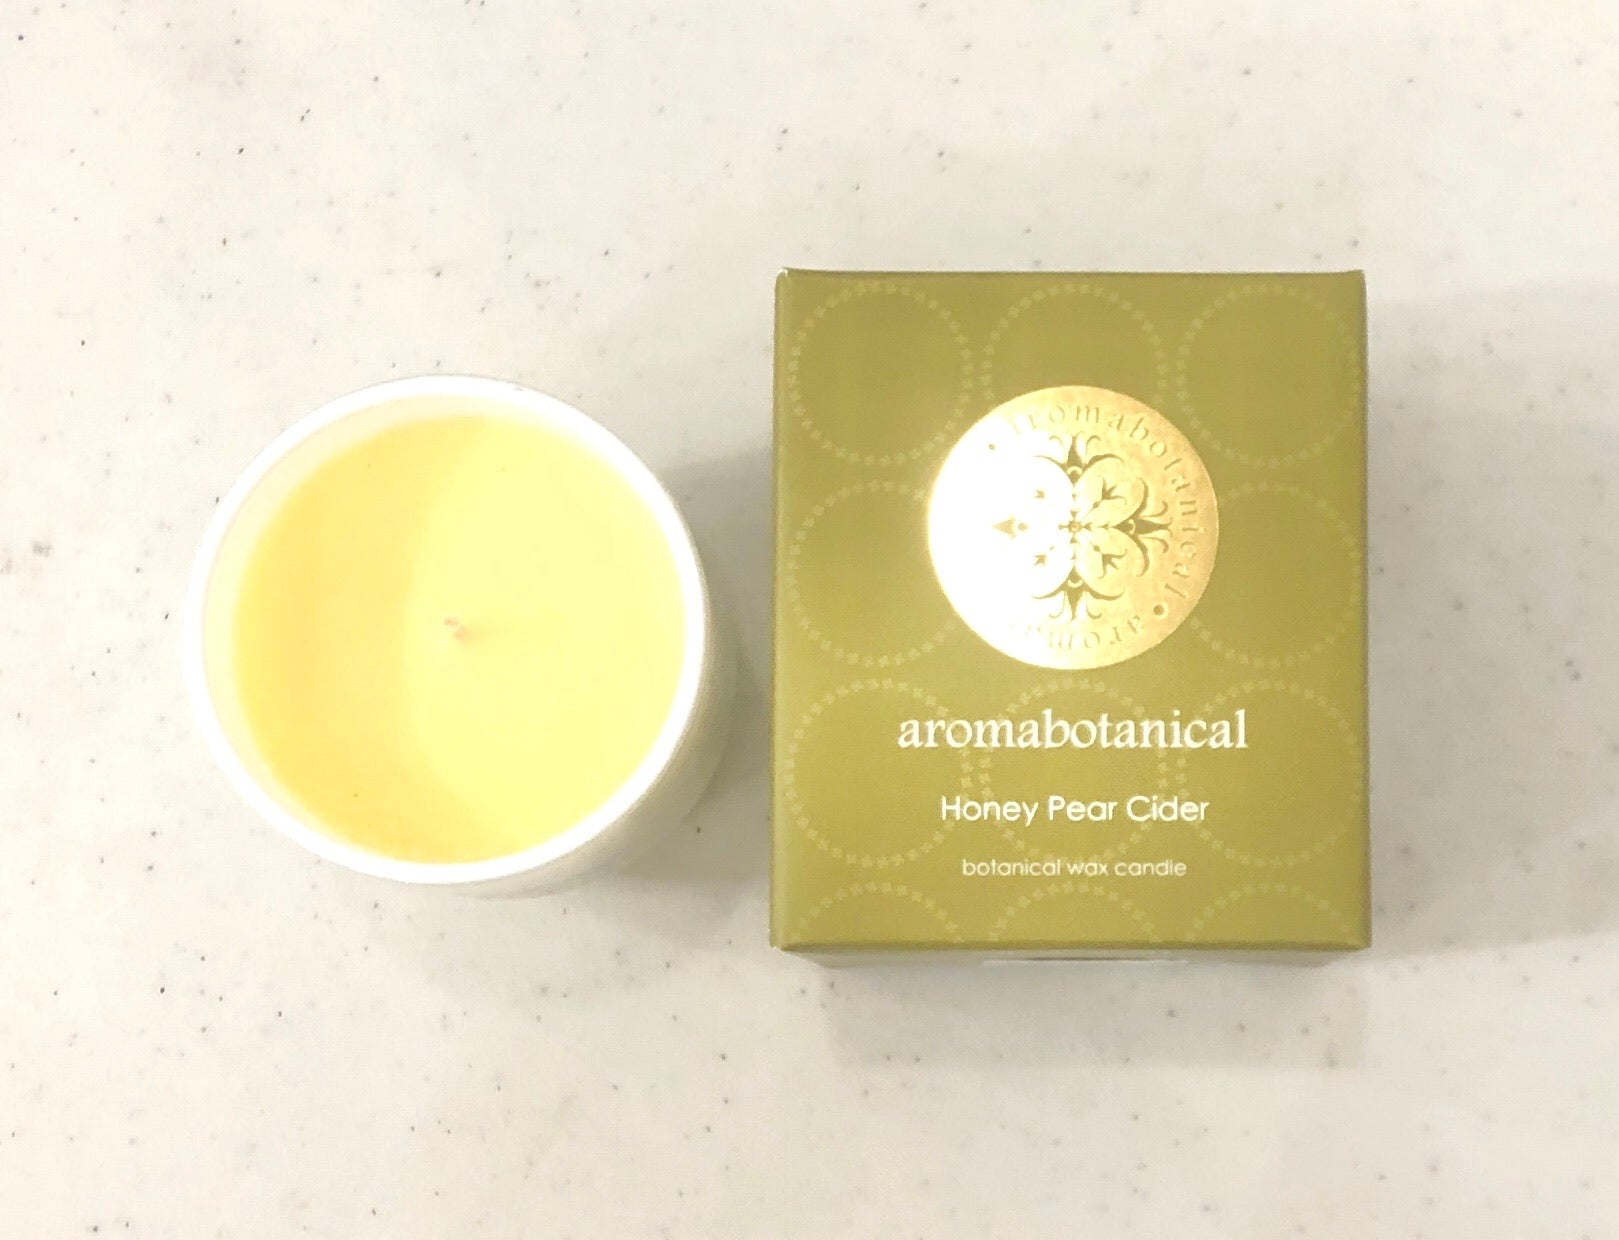 Aromabotanical Candle - Honey Pear